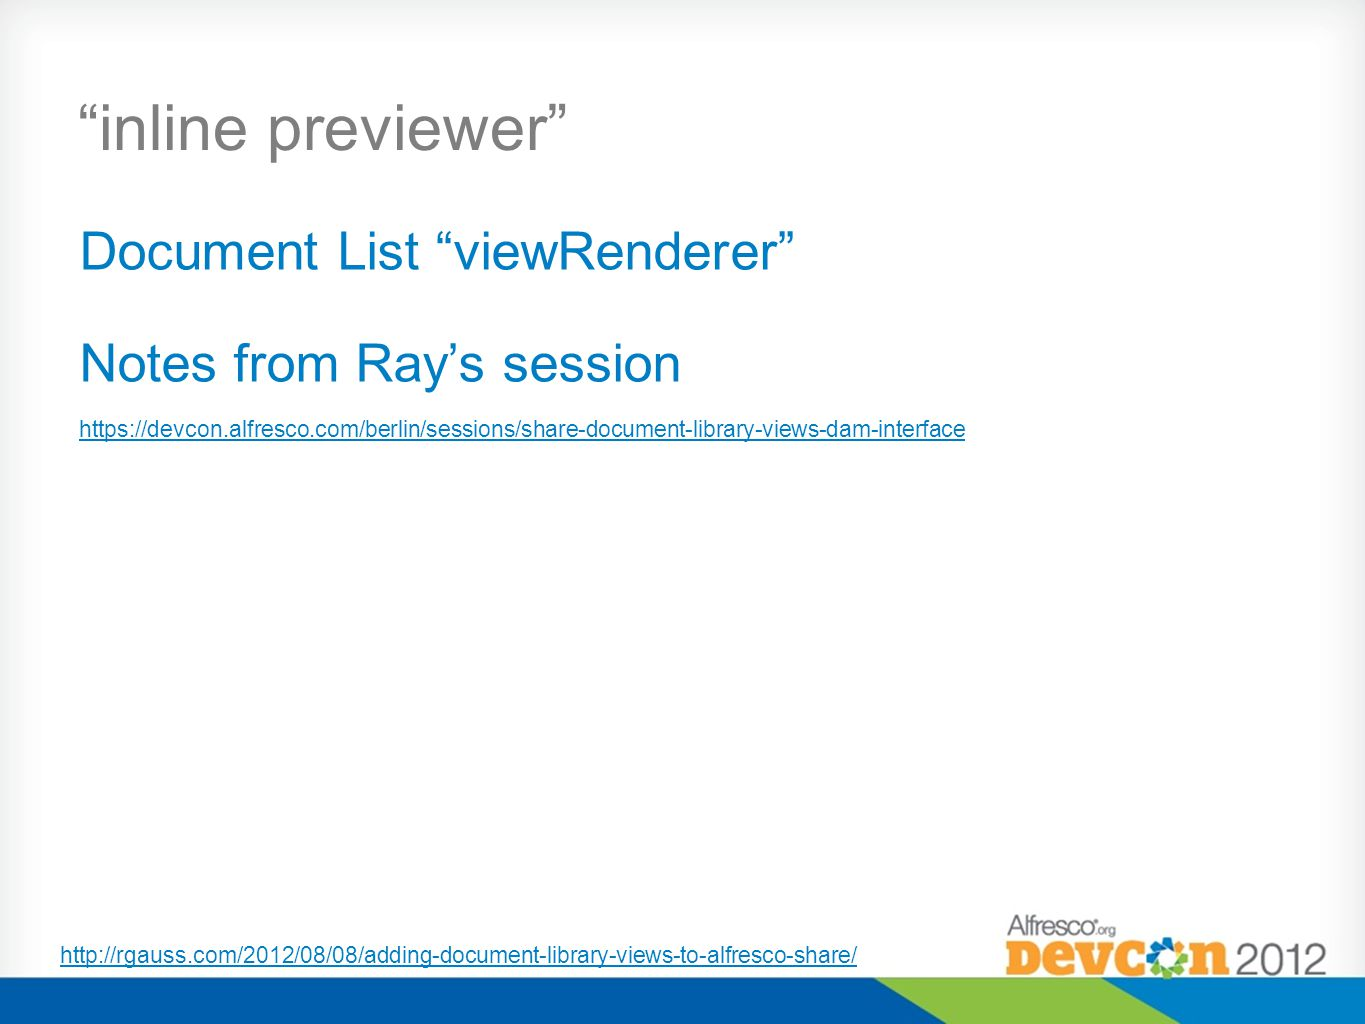 inline previewer Document List viewRenderer